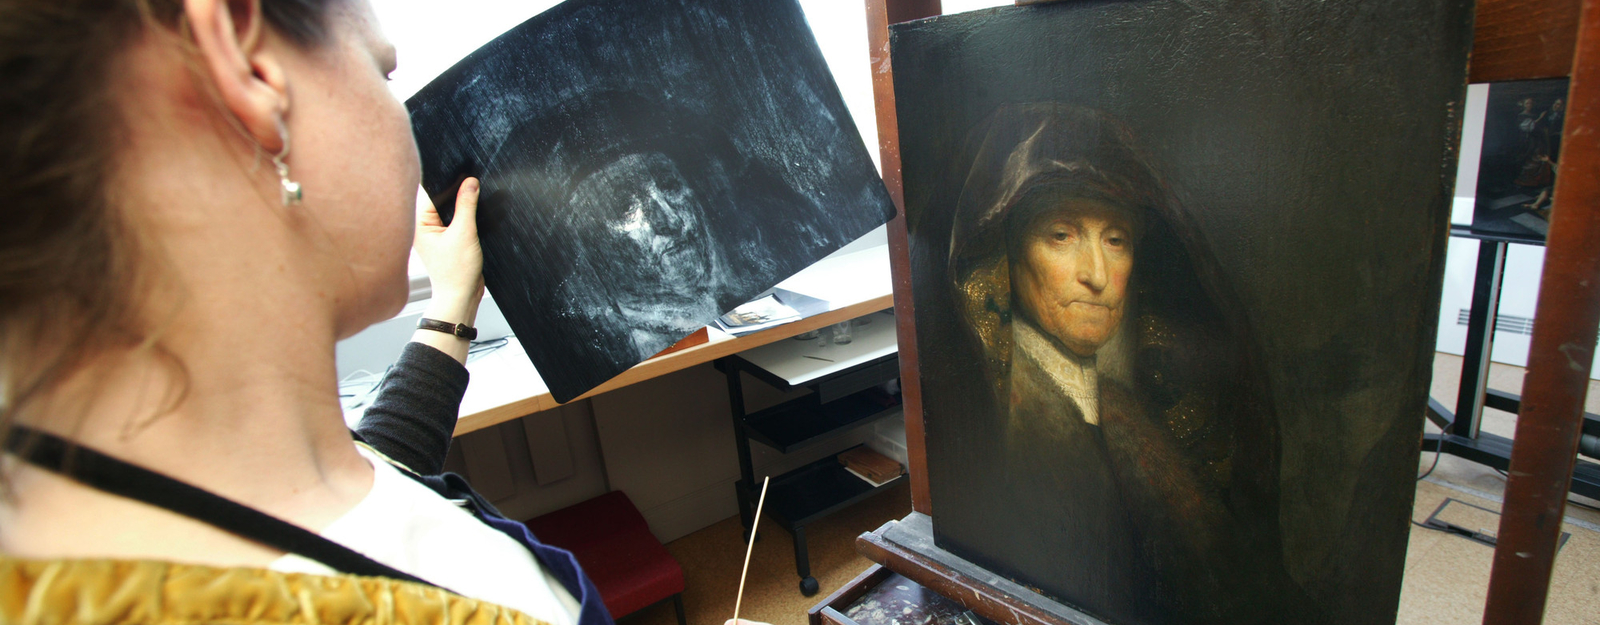 Staff restoring Rembrant picture in conservation studio